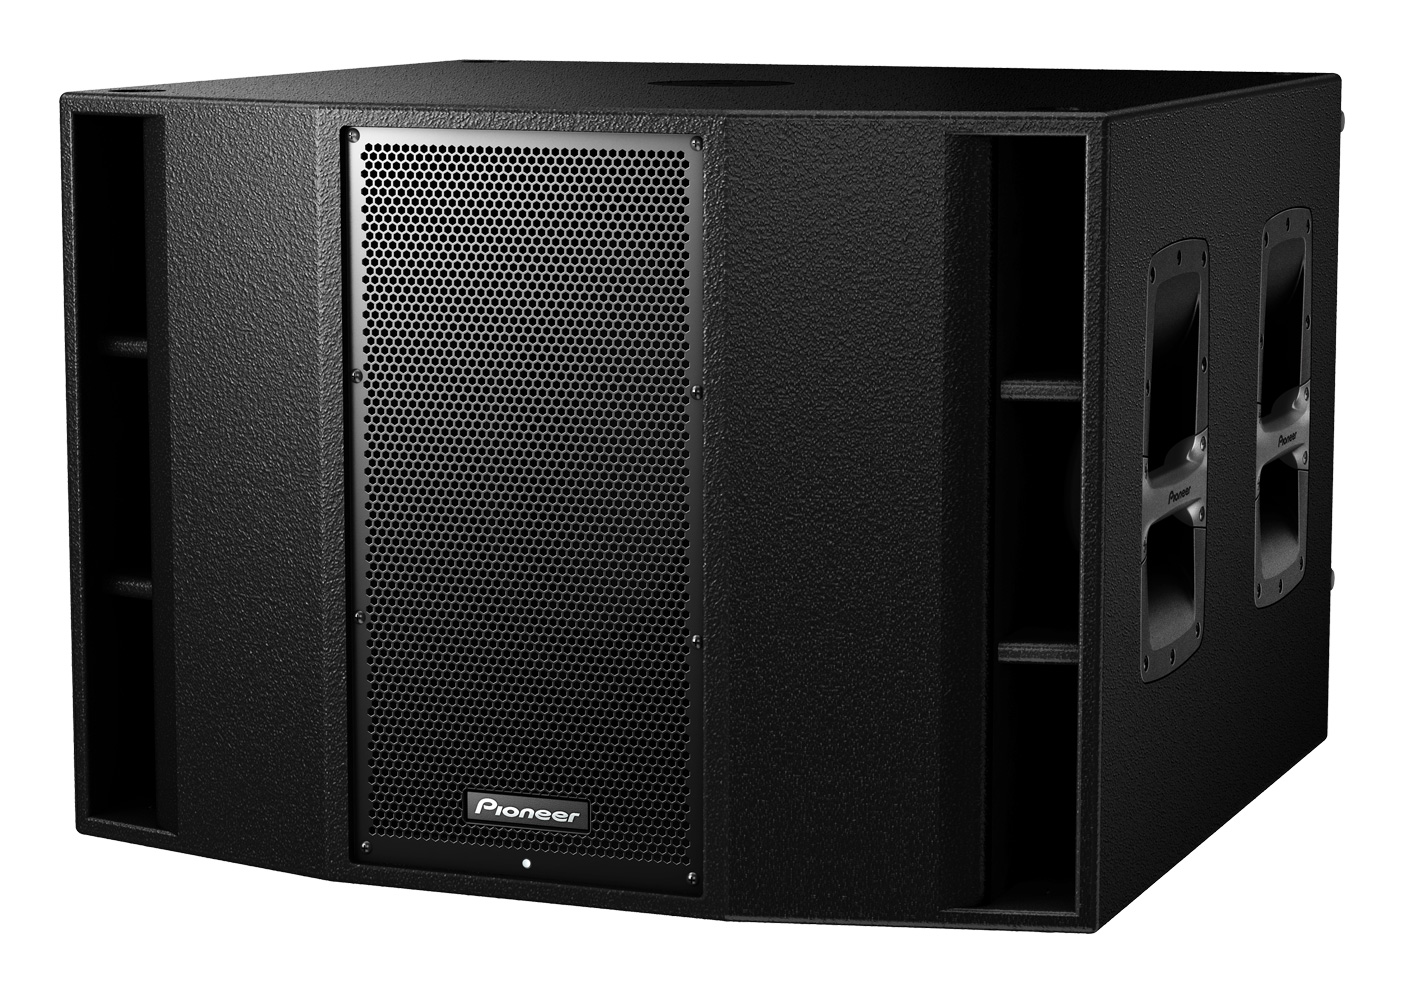 ���������� ��������� Pioneer XPRS215S